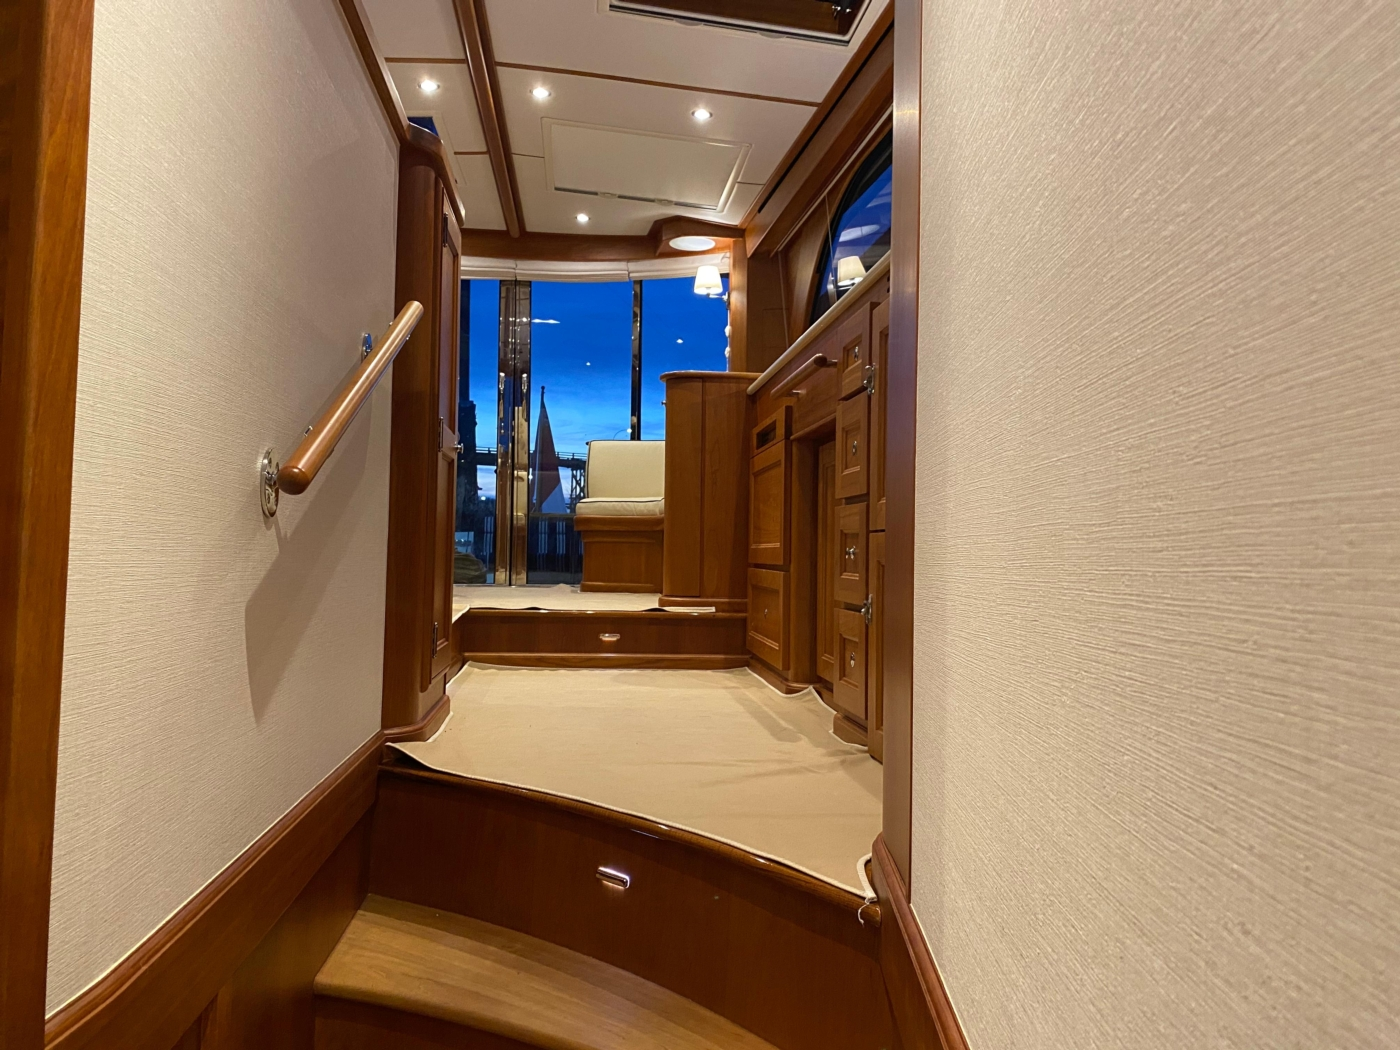 2018 Hinckley Talaria 48 MKII, View from accommodations hallway